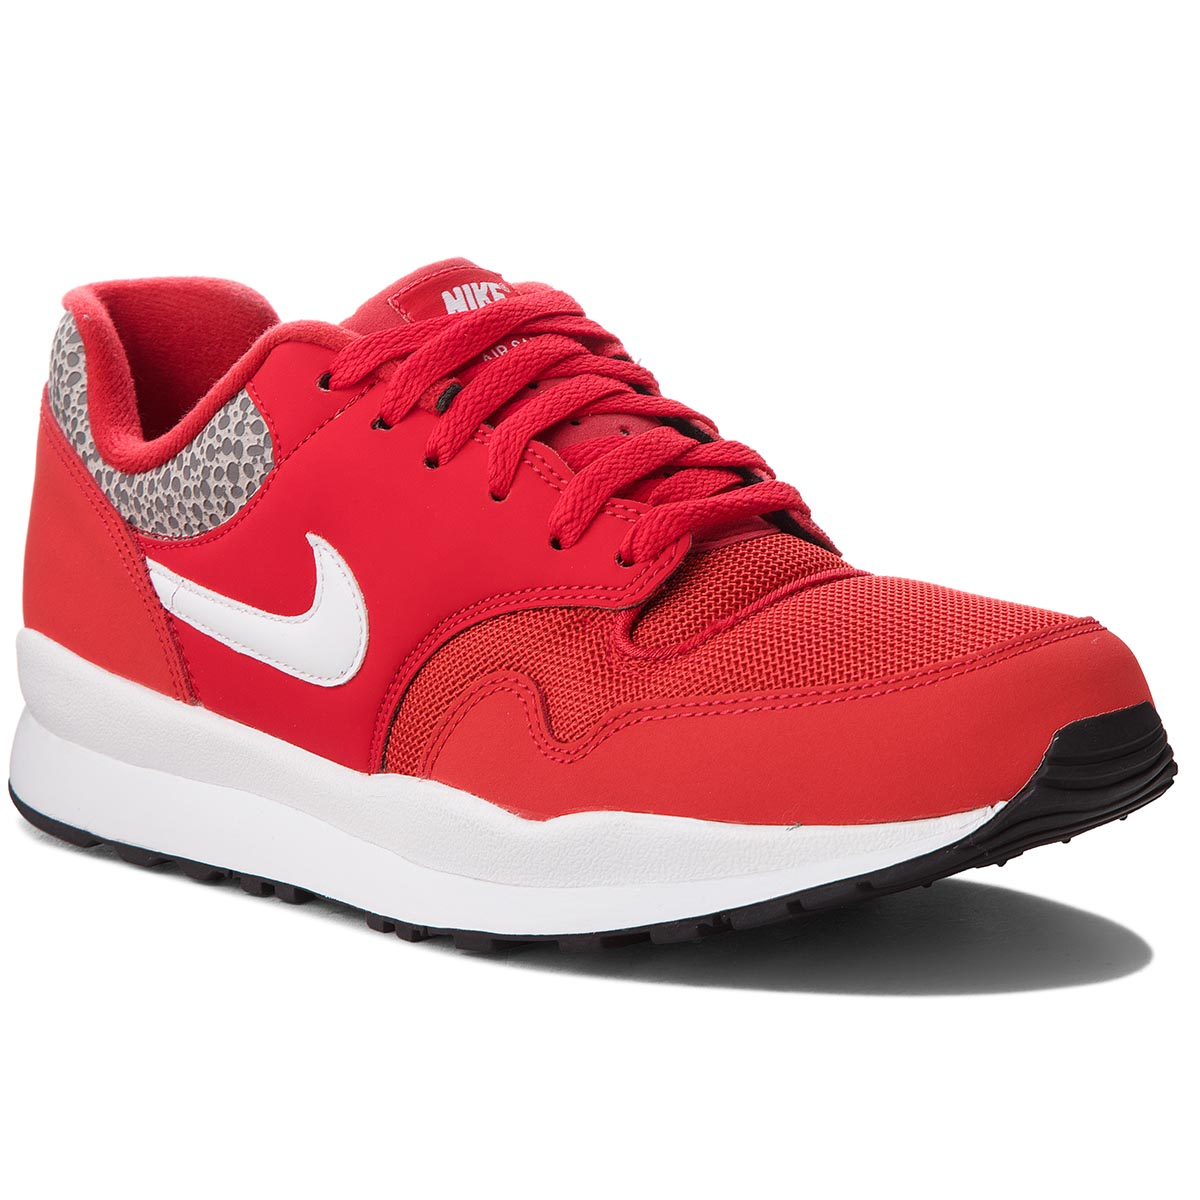 Pantofi NIKE - Air Safari 371740 600 University Red/White/Black